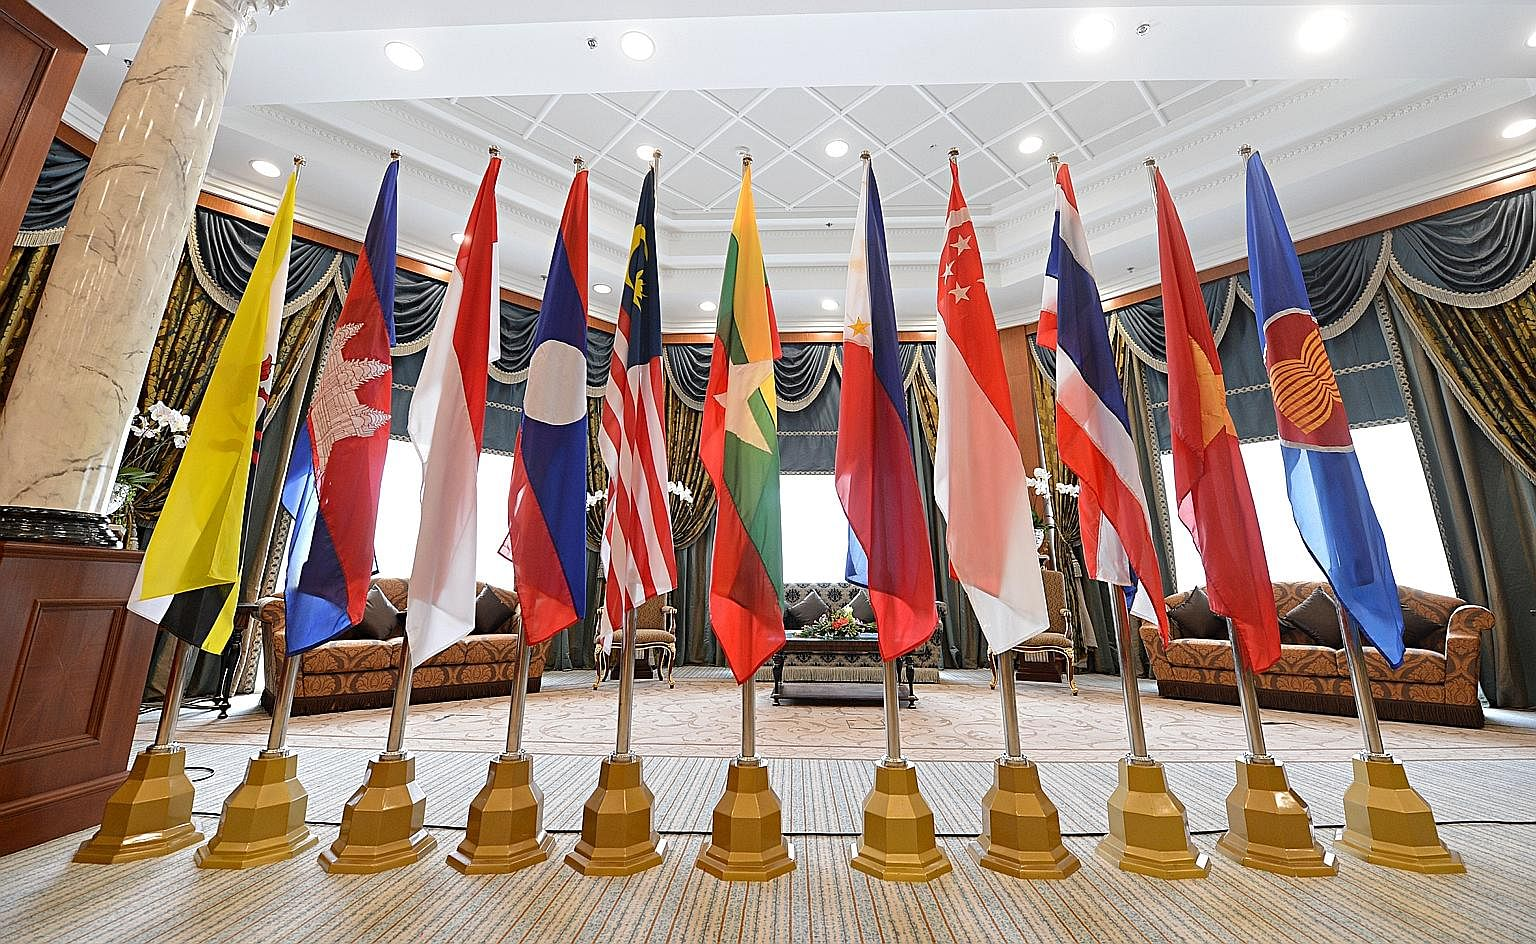 Flags of the Asean member states. It is important that the US continues to engage with Asean nations, even as China grows into a formidable power. Asean wants good relationships with both sides as it understands that better relations between all part